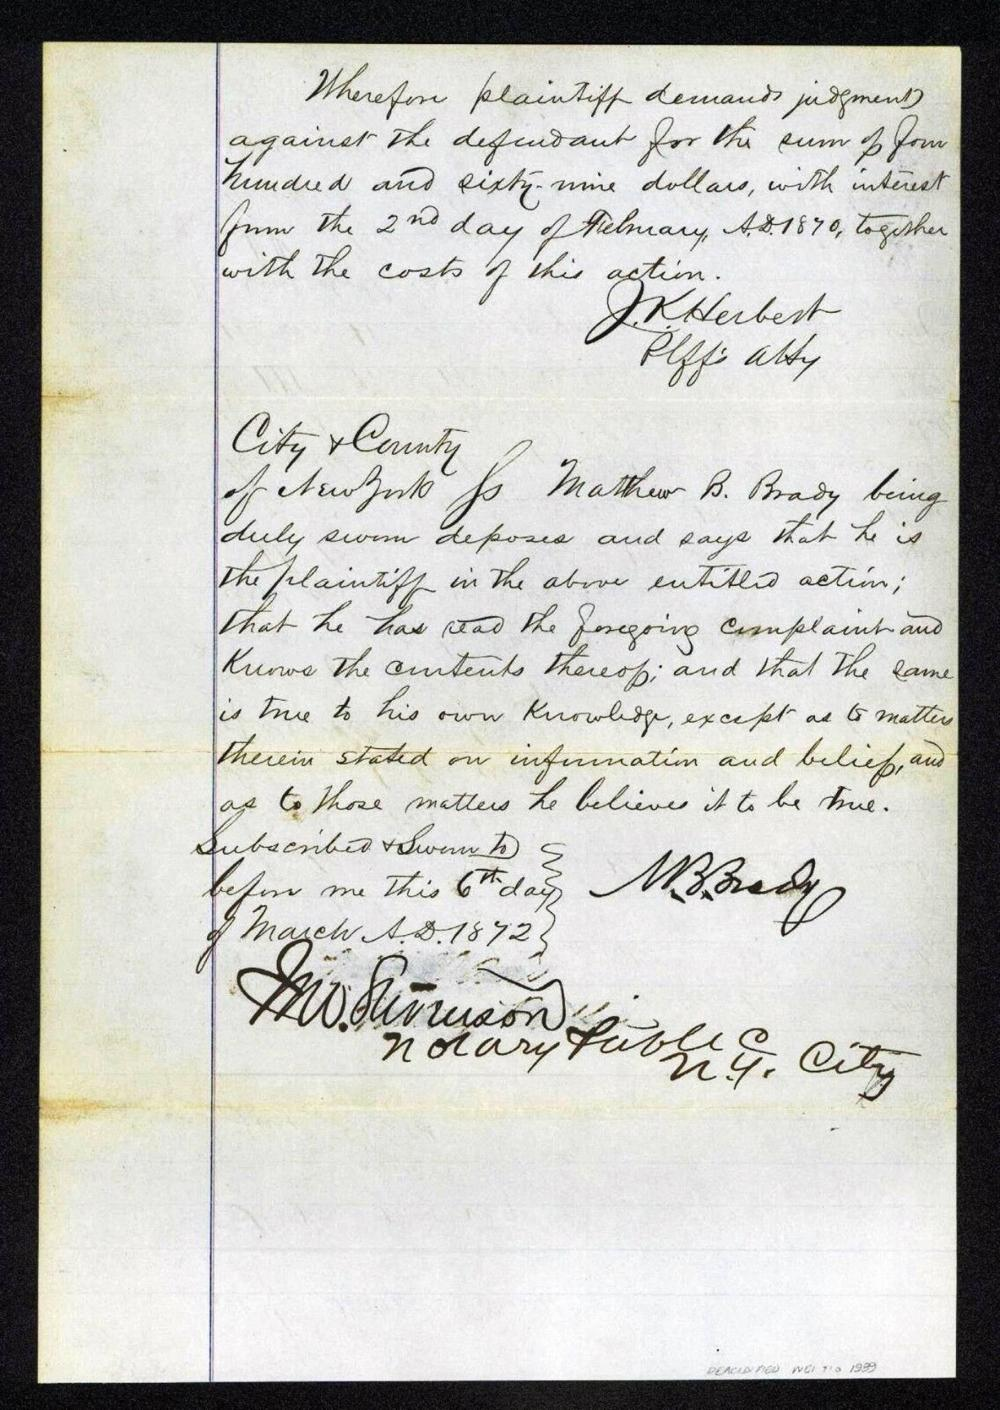 Mathew Brady Sues the Notorious Jay Gould for his Failure to Pay for